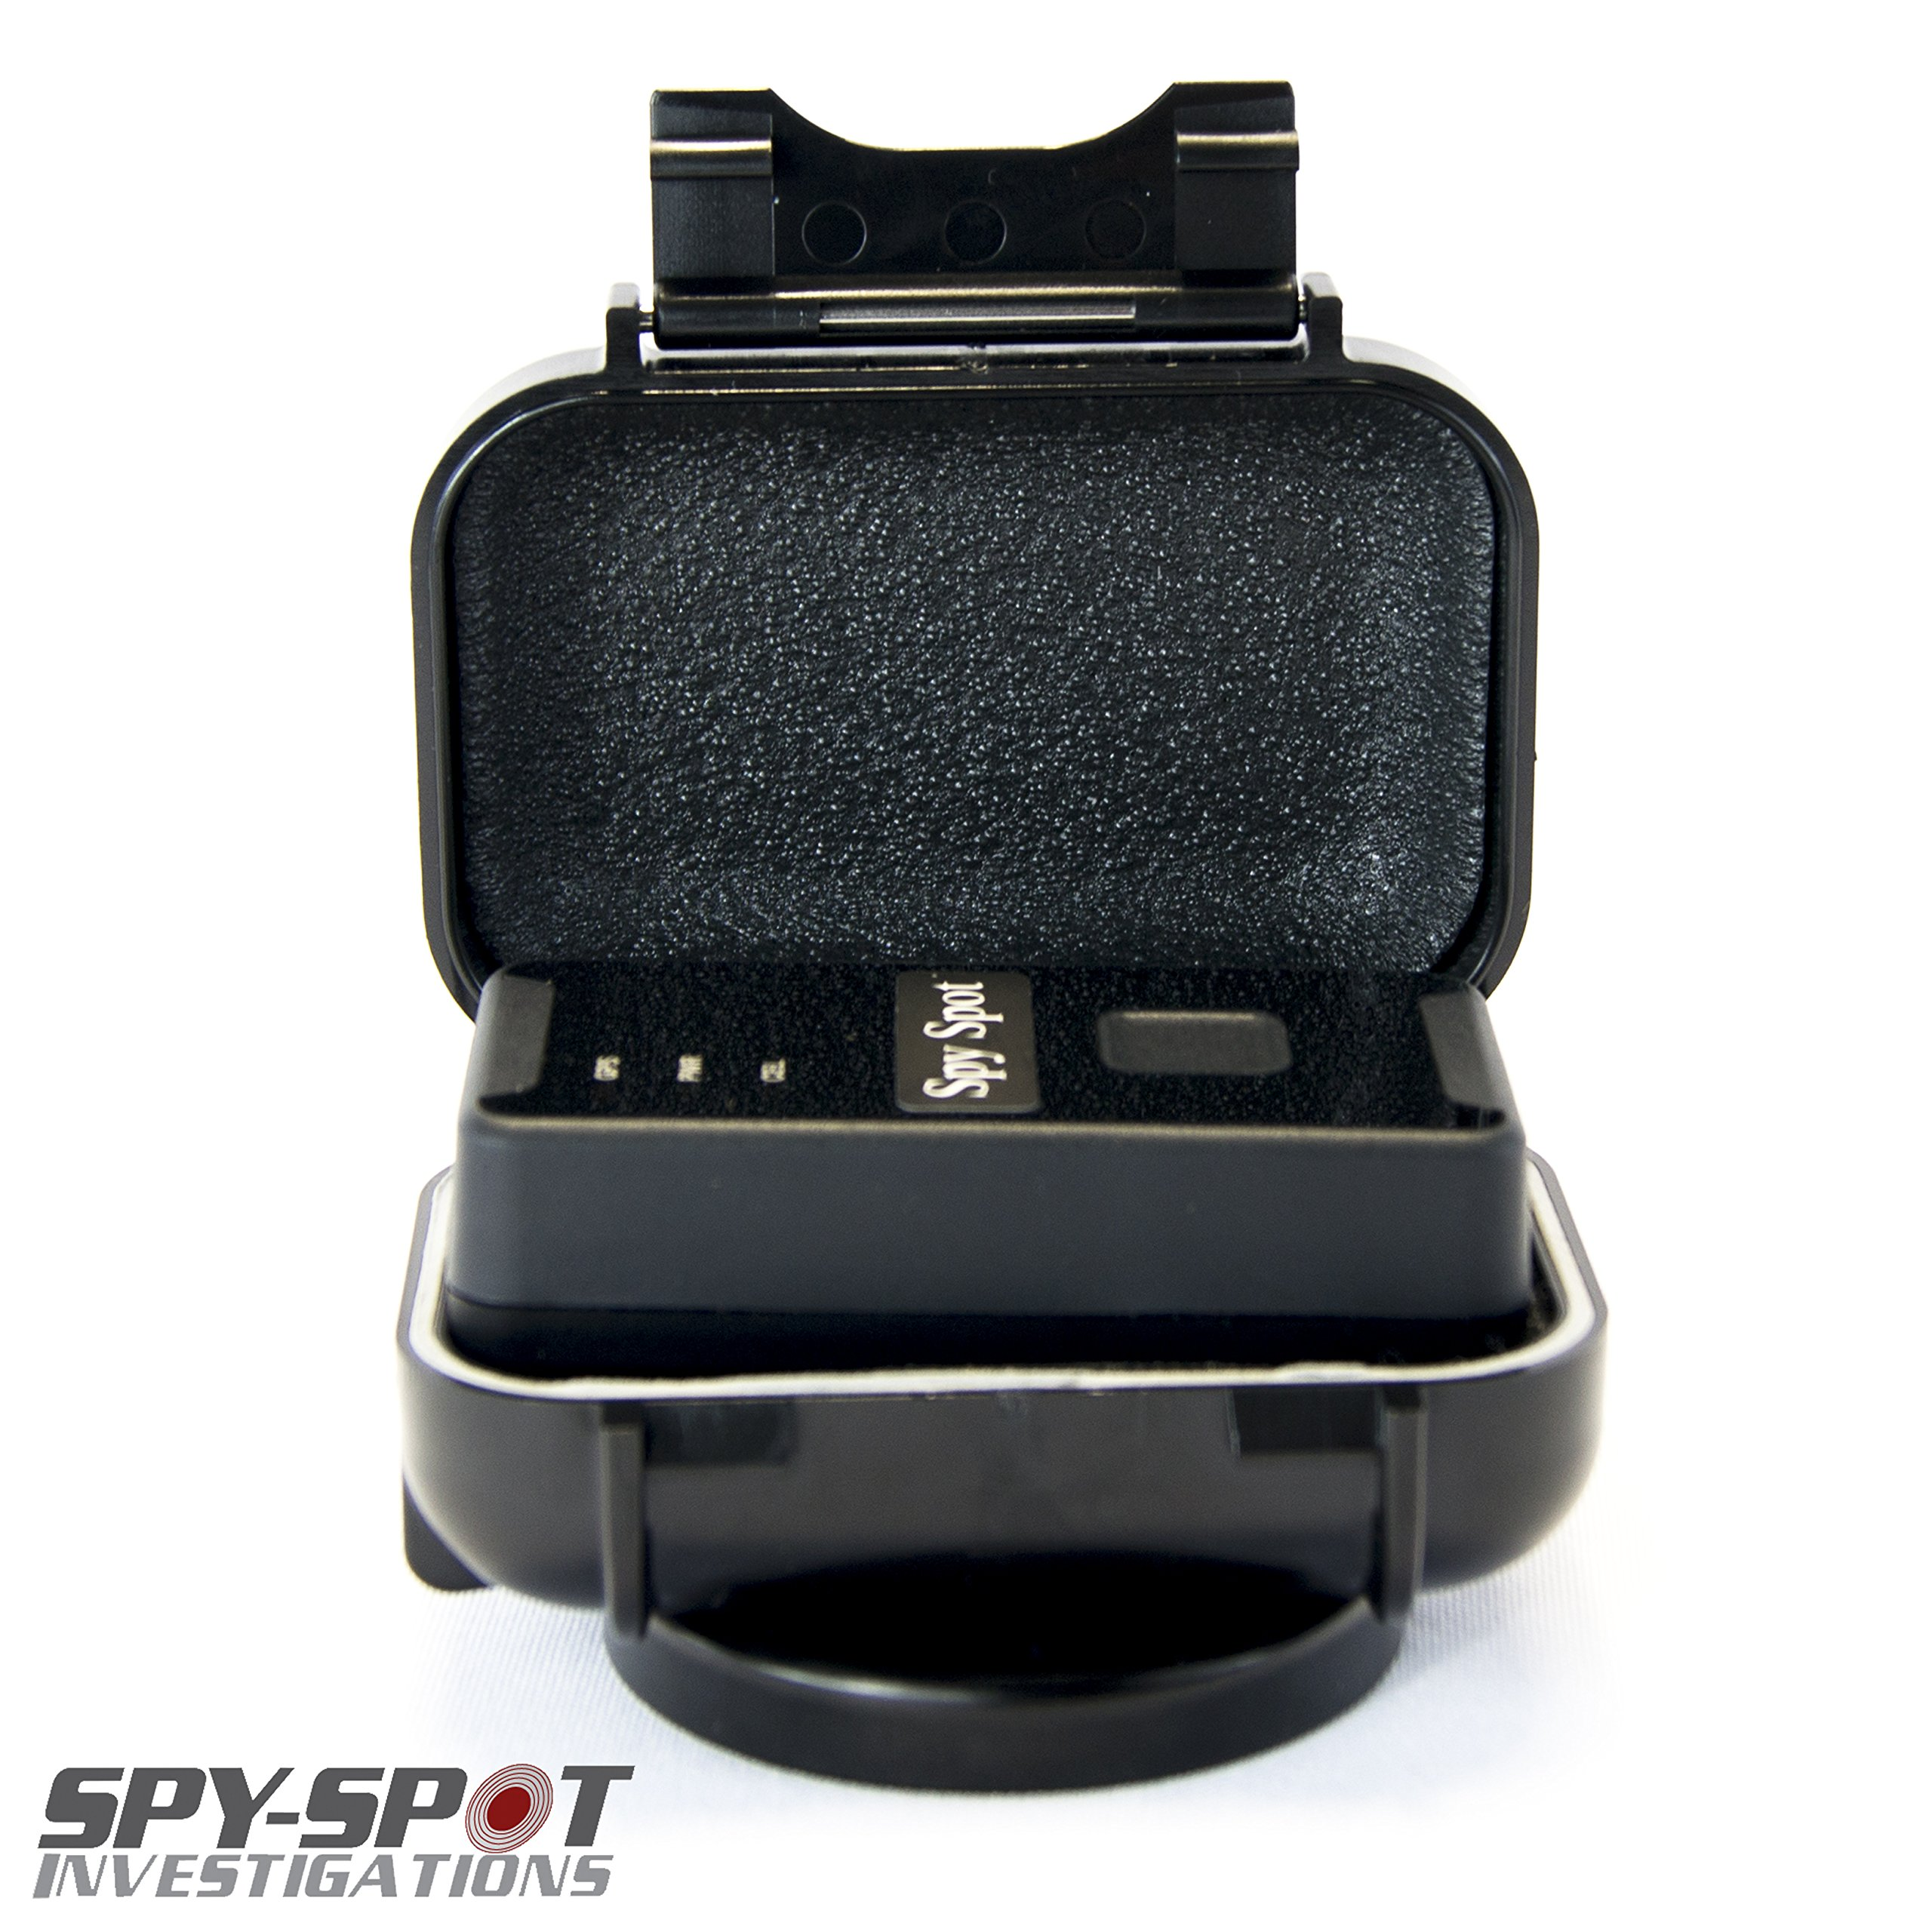 Real Time Live Mini Micro 3G GL300W Spy Spot GPS Tracker in Black - GPS Tracking Device + GL-HM Weatherproof Magnetic Case + Worldwide Coverage